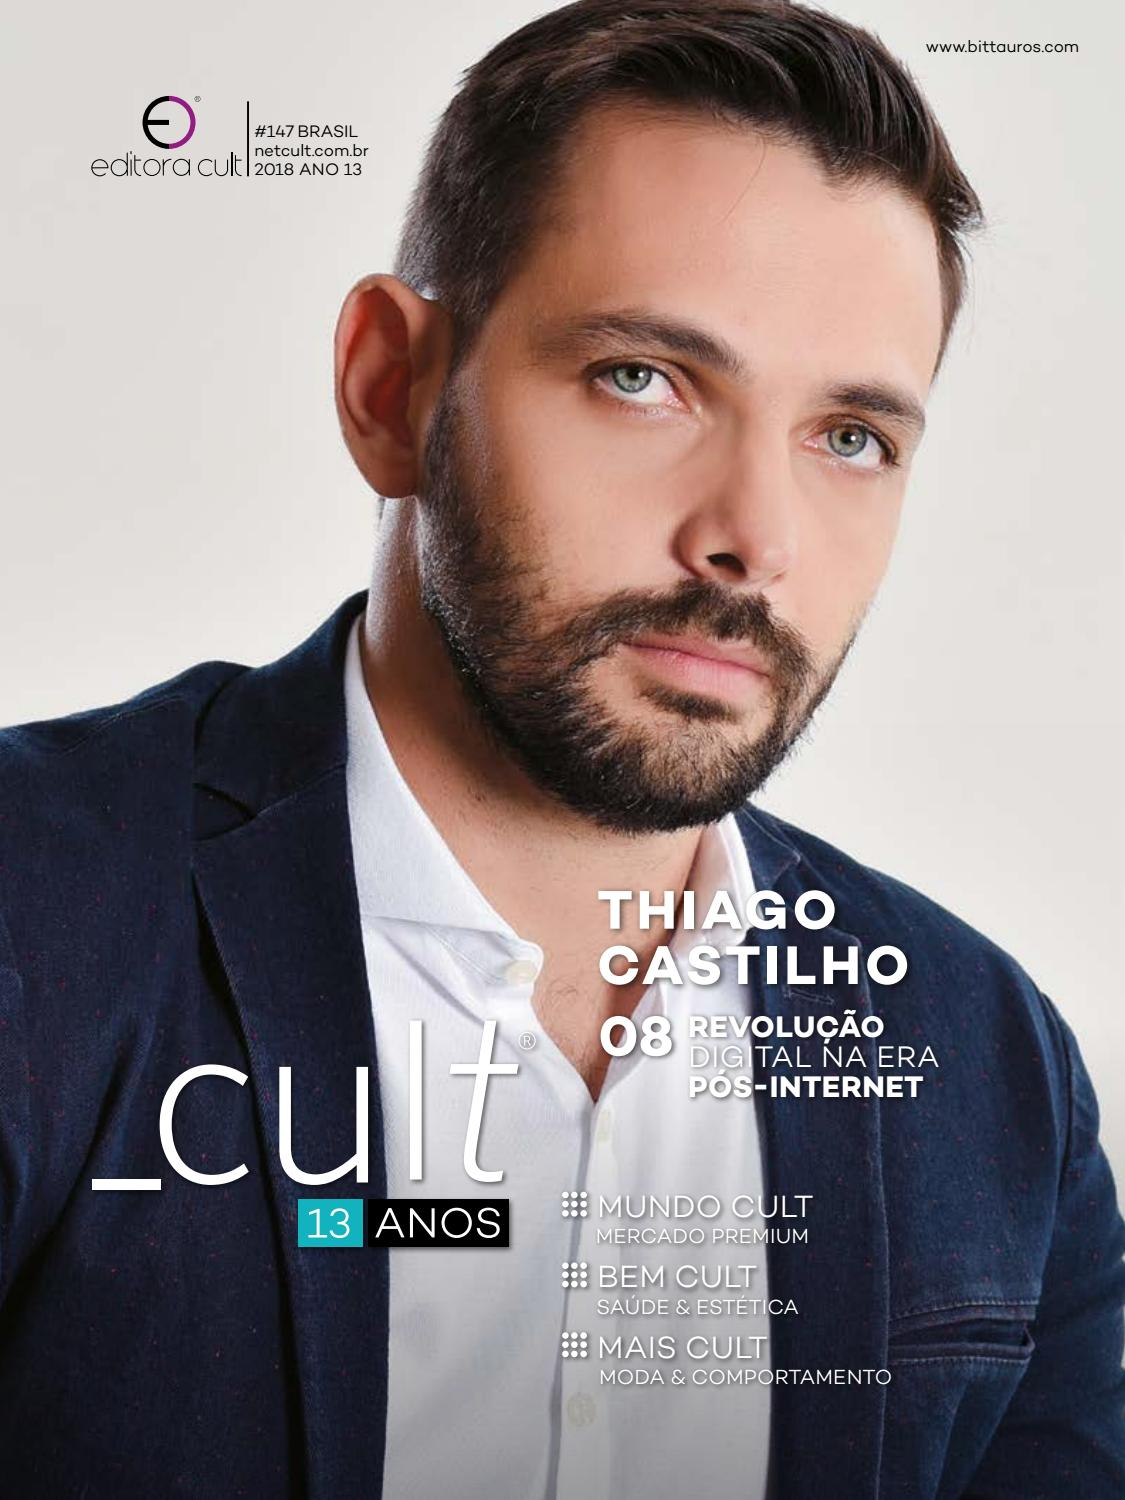 Cult 147  Thiago Castilho by Revista Cult - issuu 75fa279f951